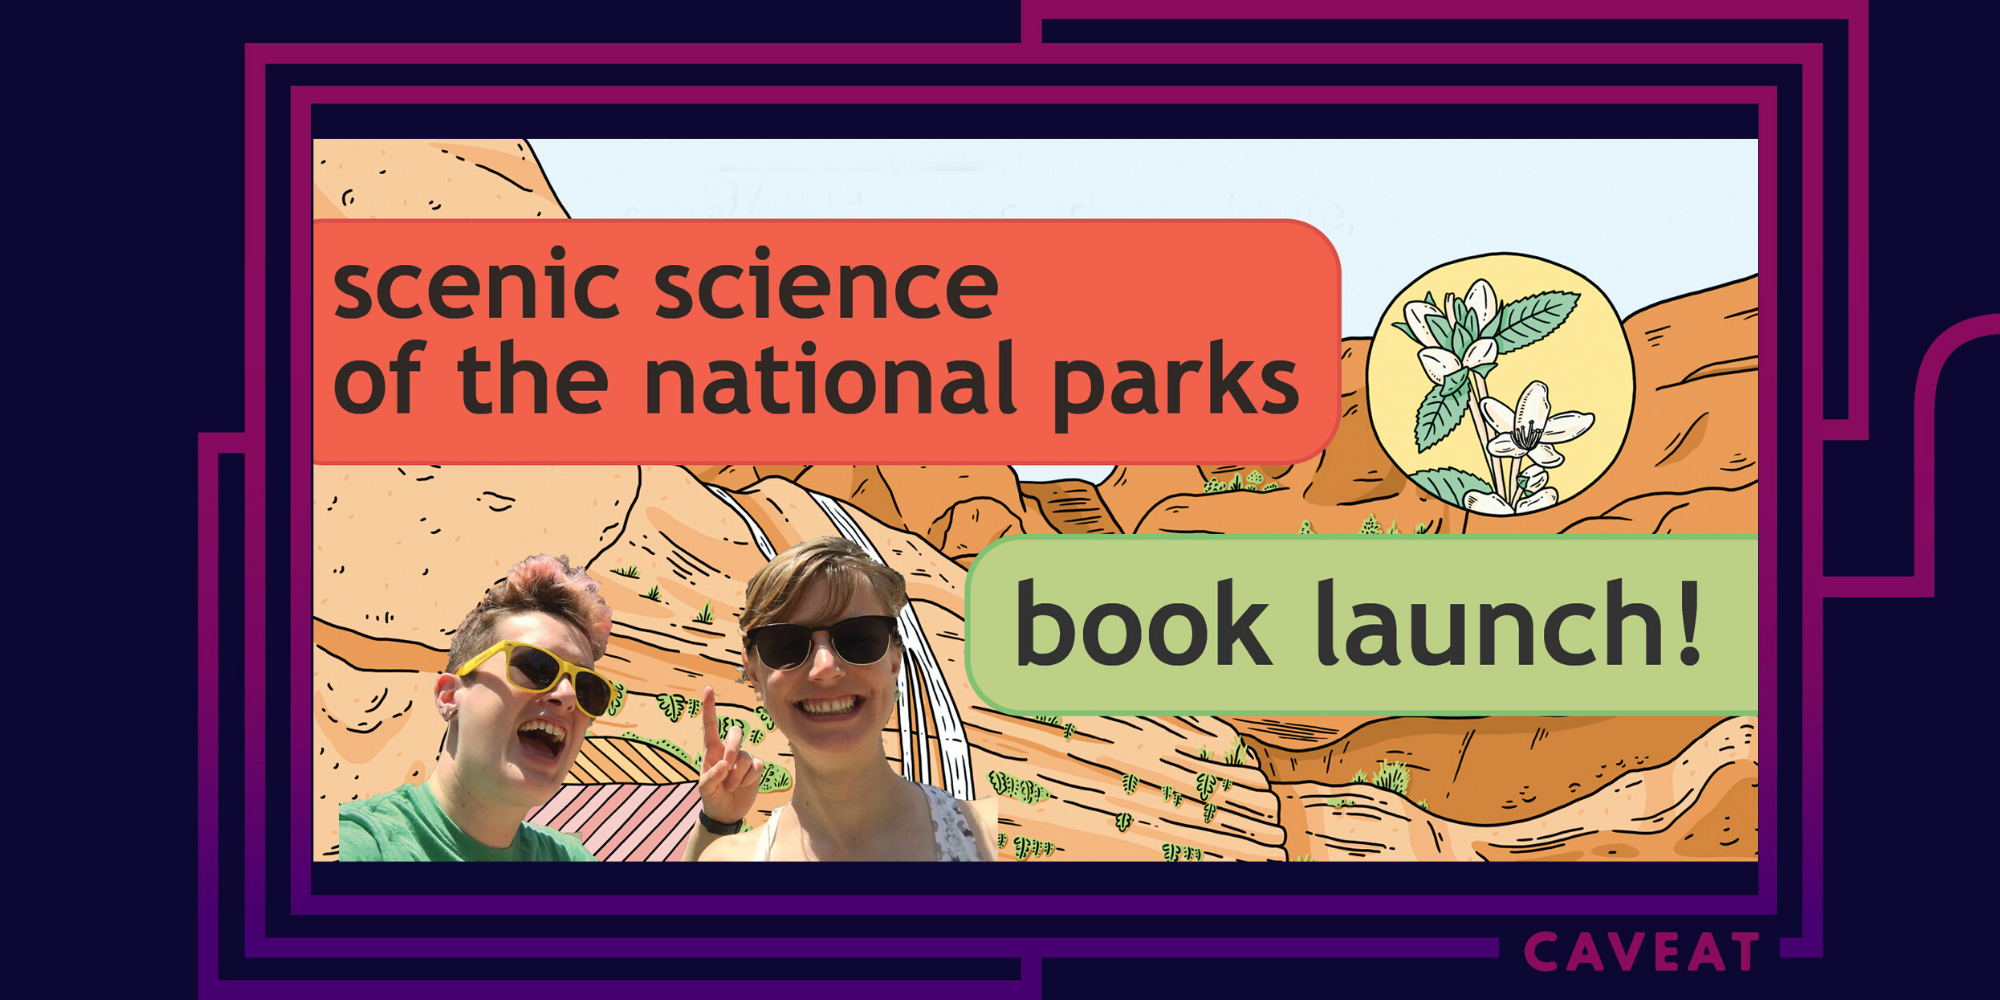 66628 image - Scenic Science of the National Parks Book Launch